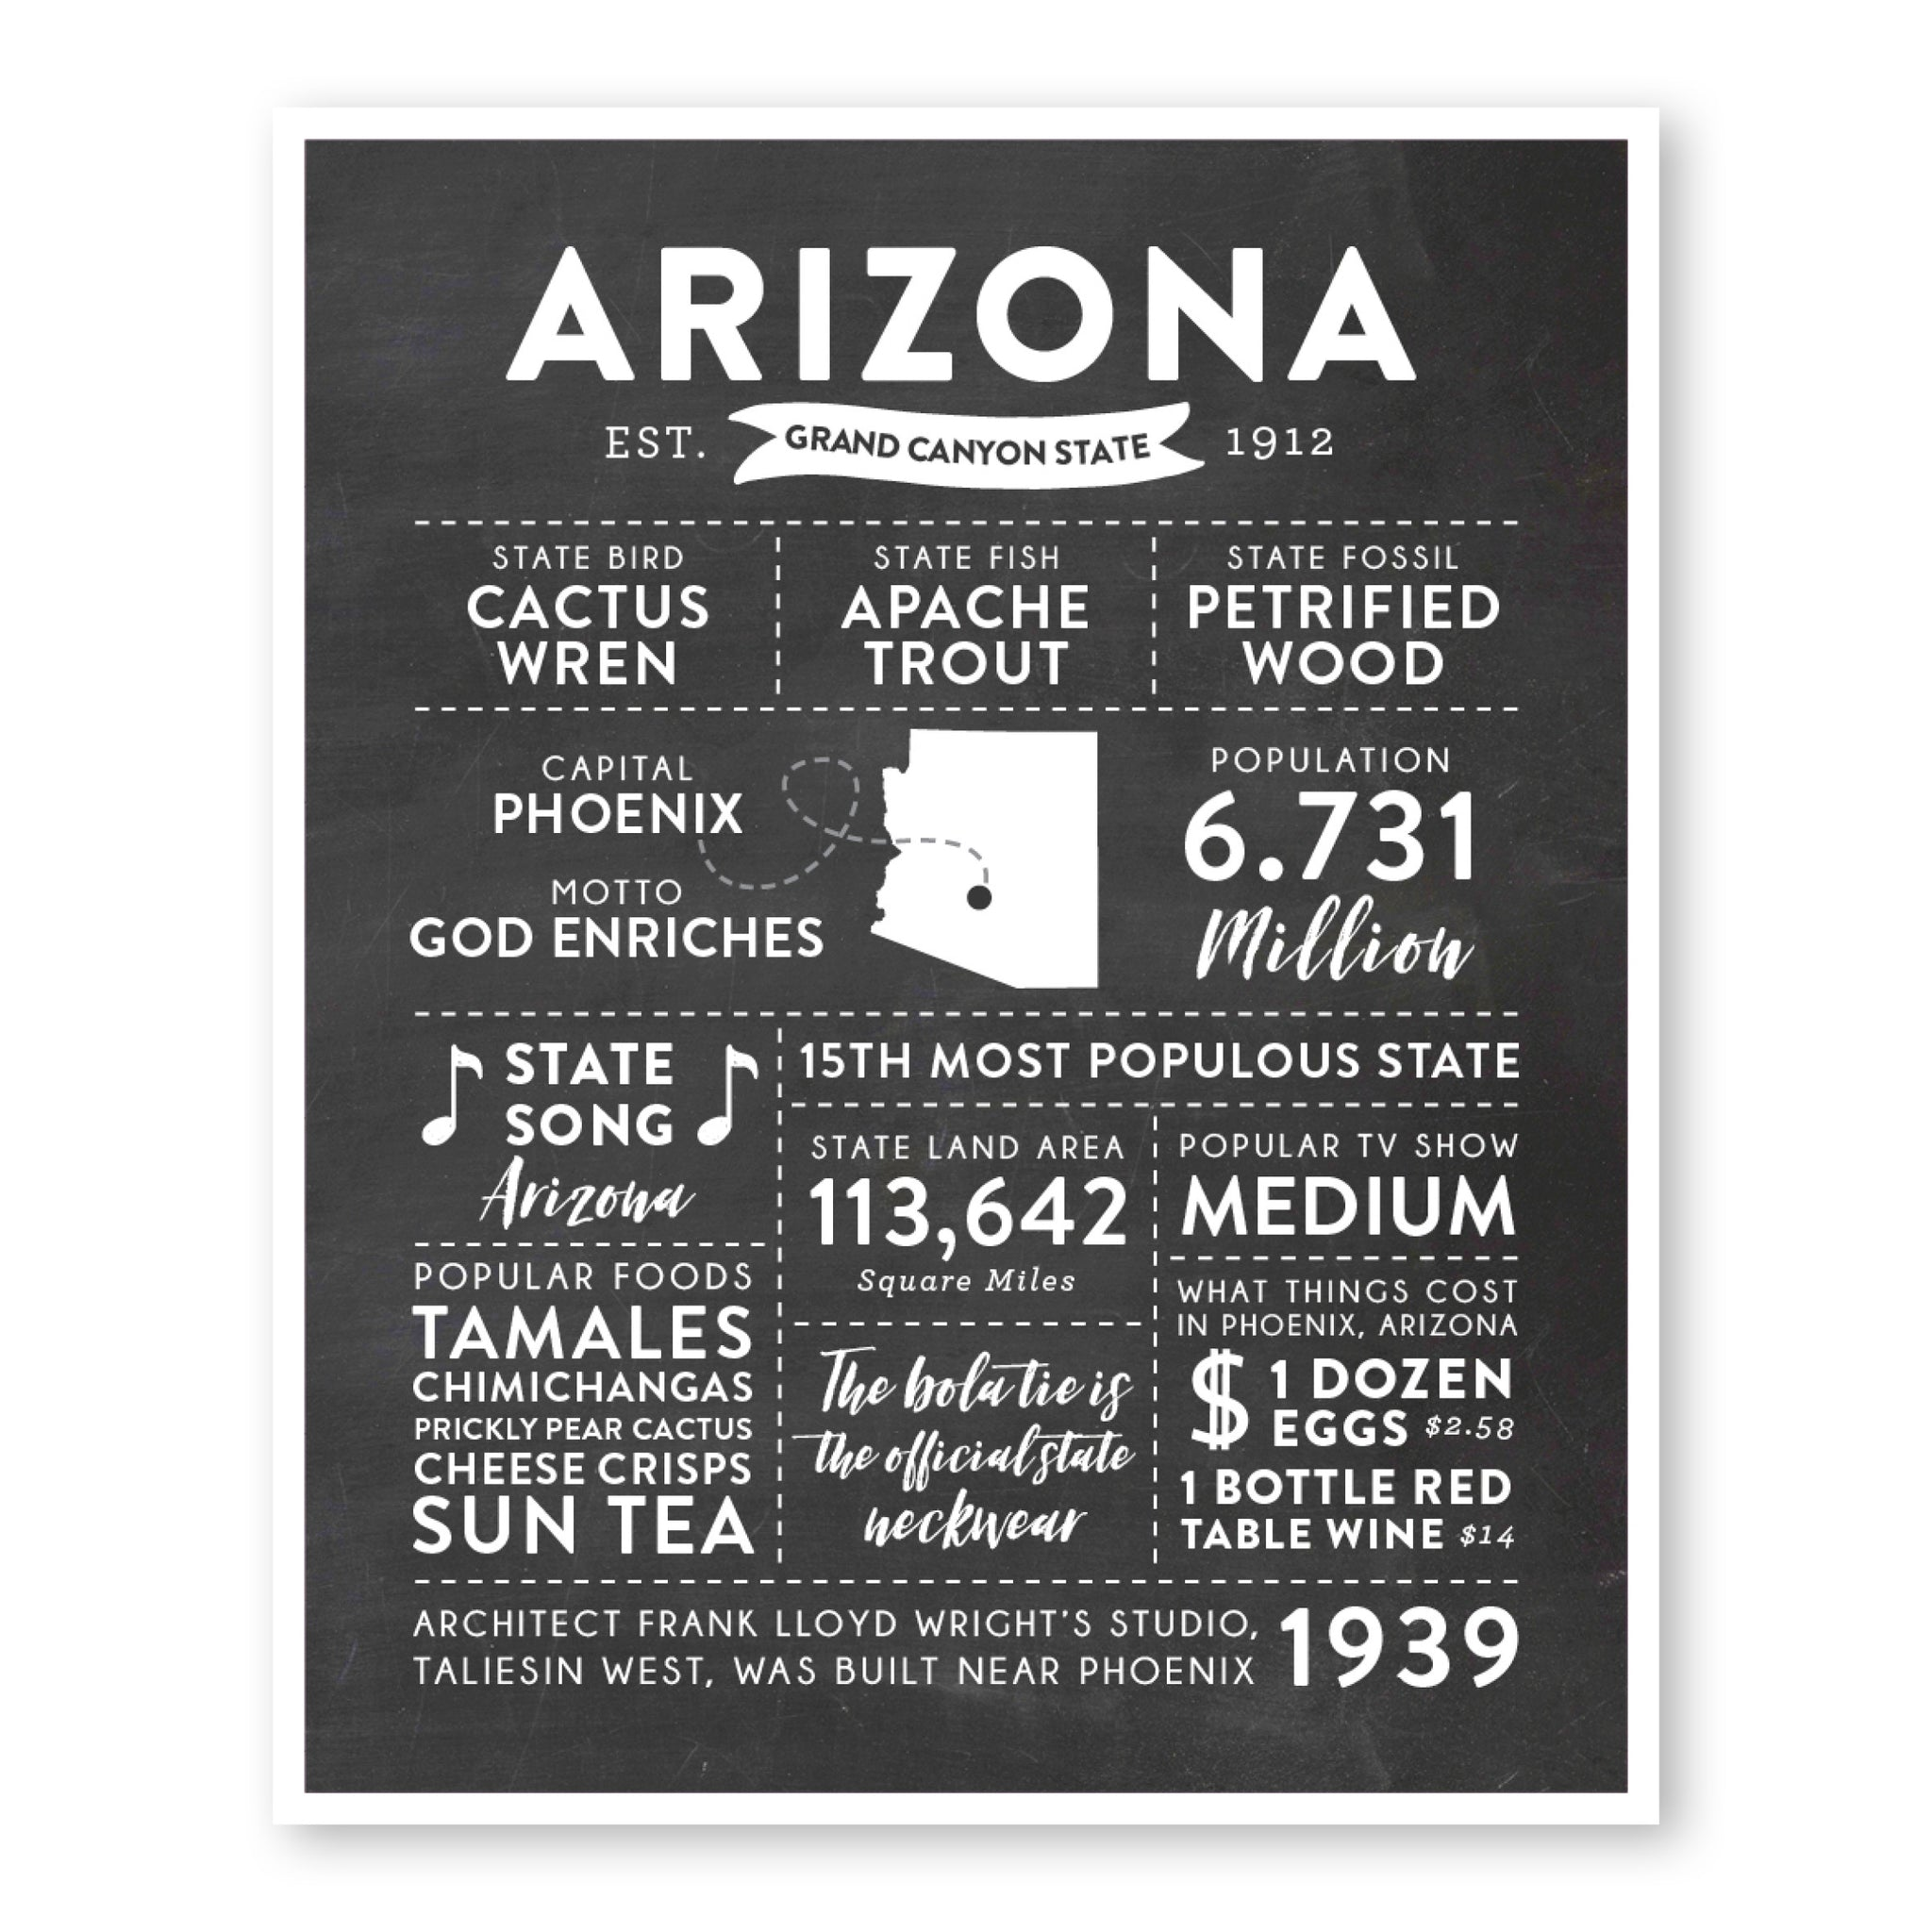 Arizona – Puff Paper Co